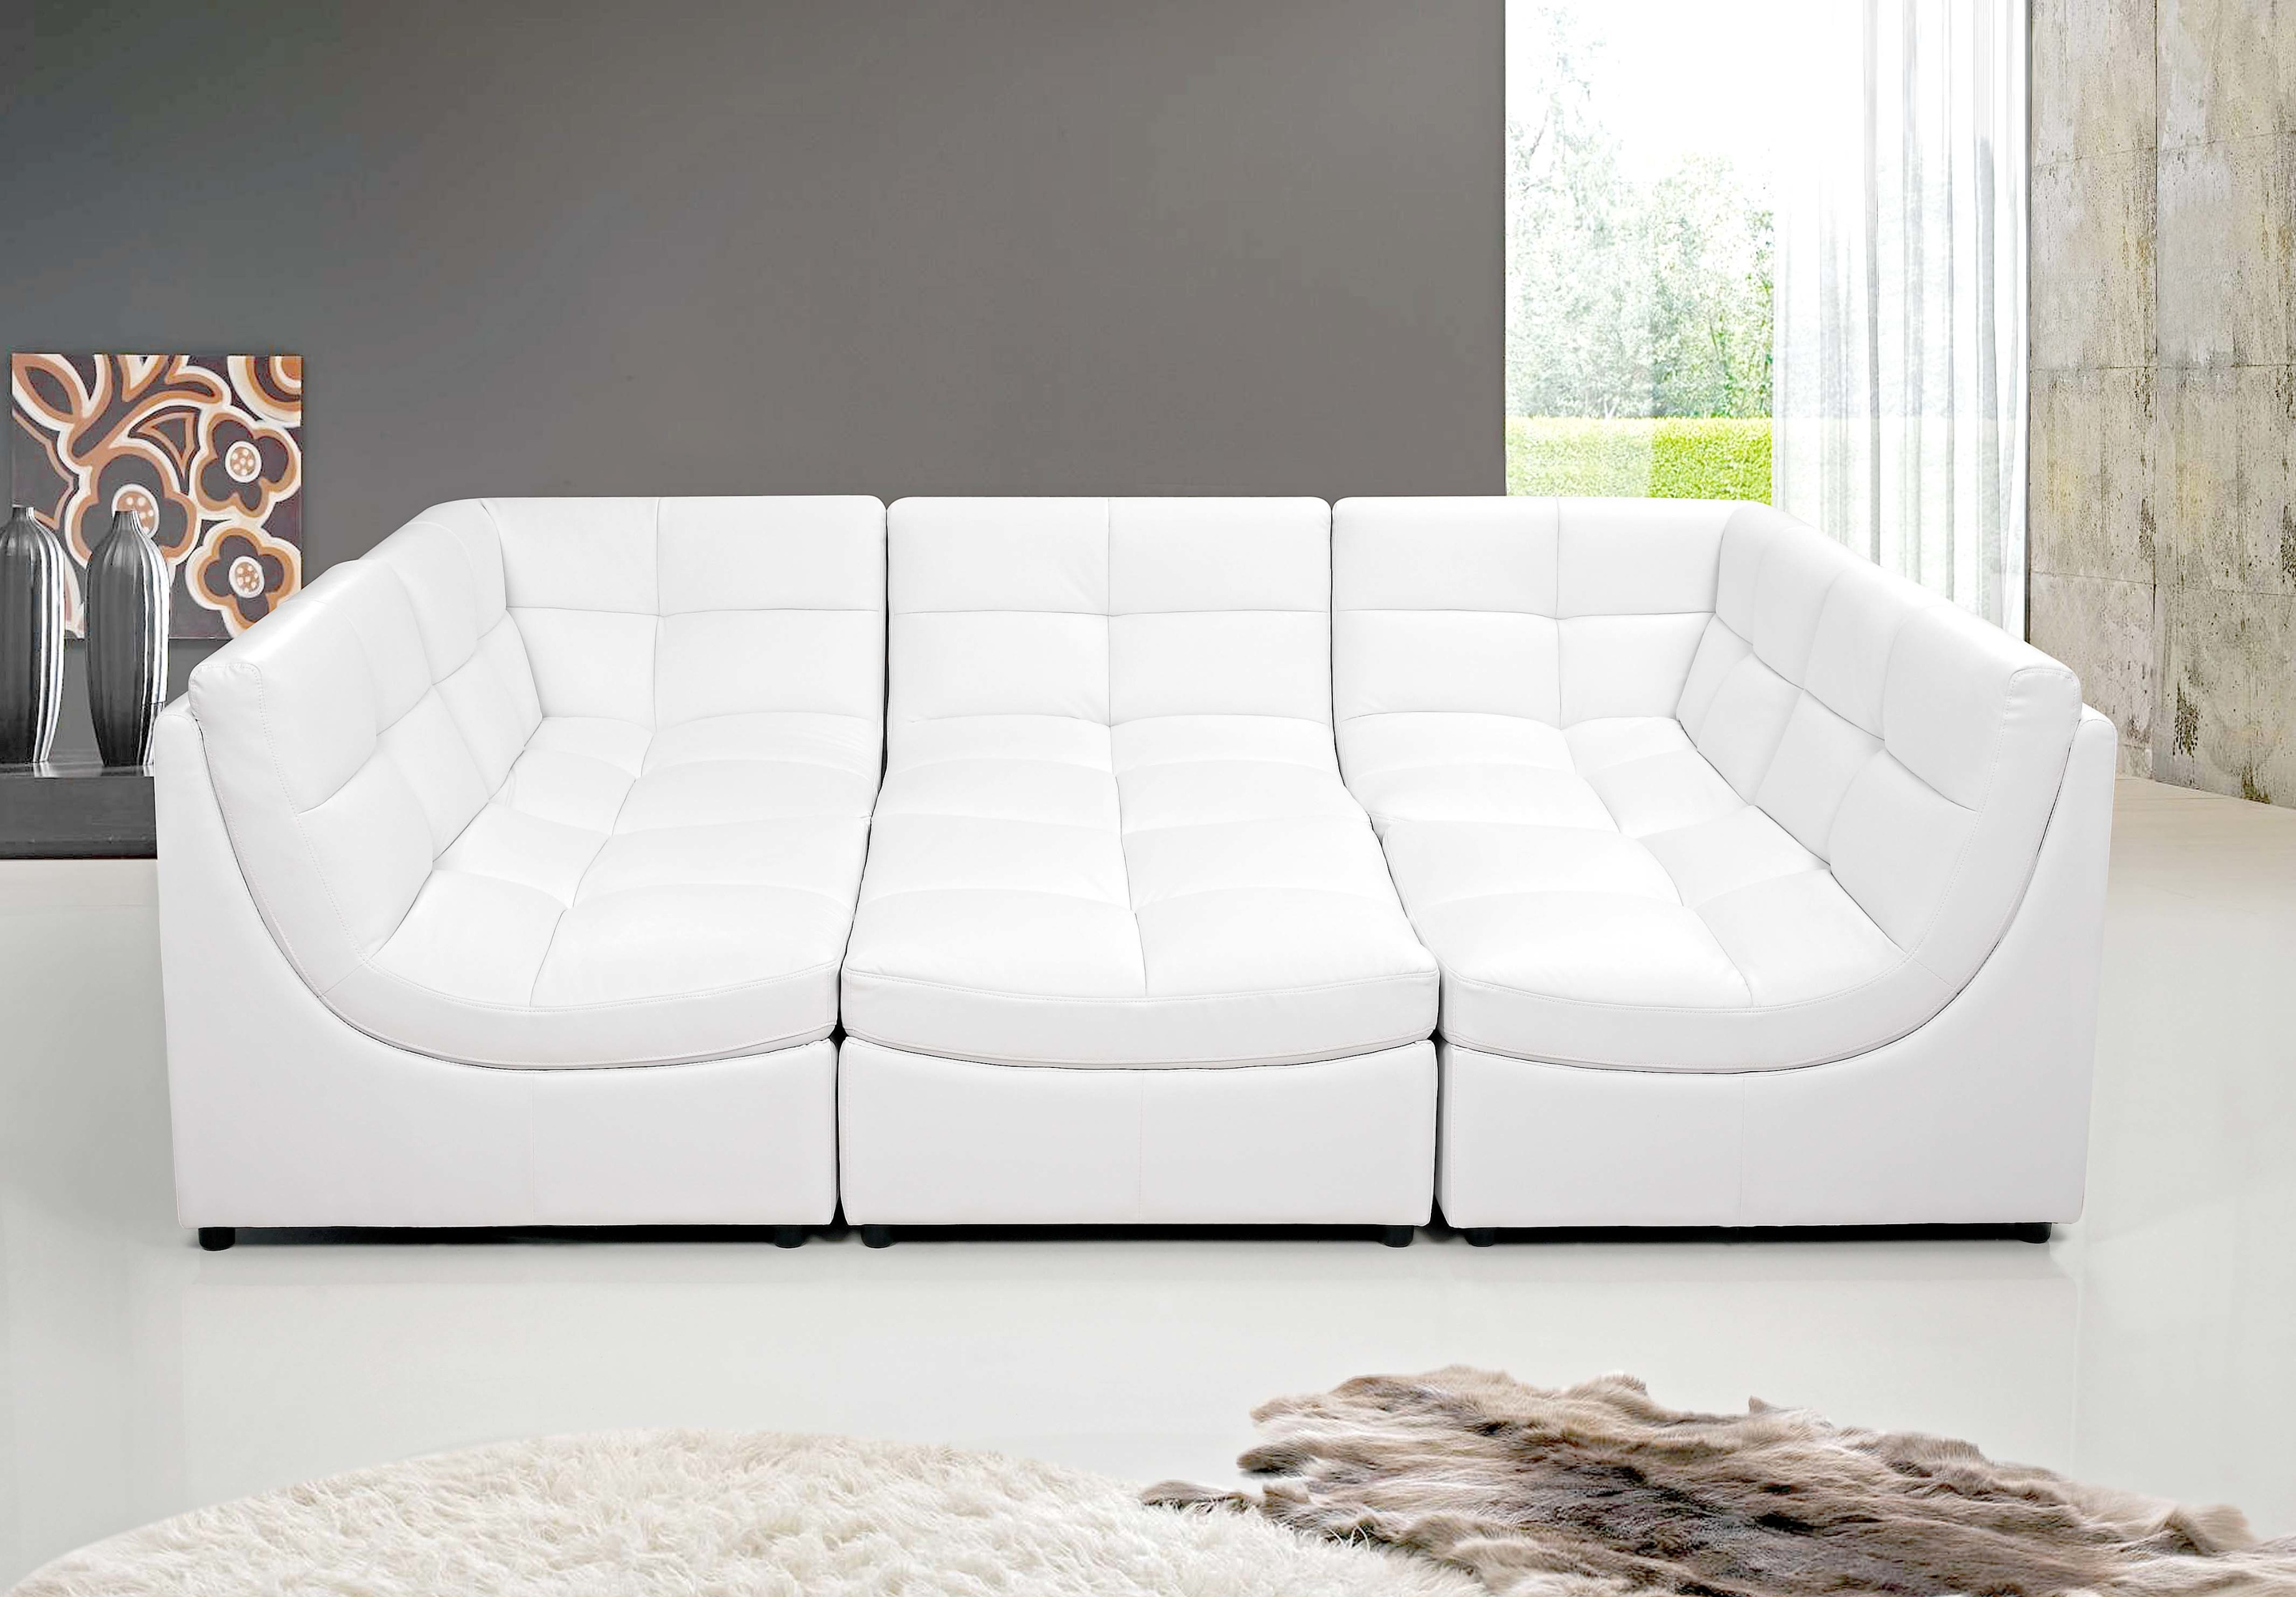 White sectional sofa set couch bonded leather armless chairs corners ottoman modern living room walmart com